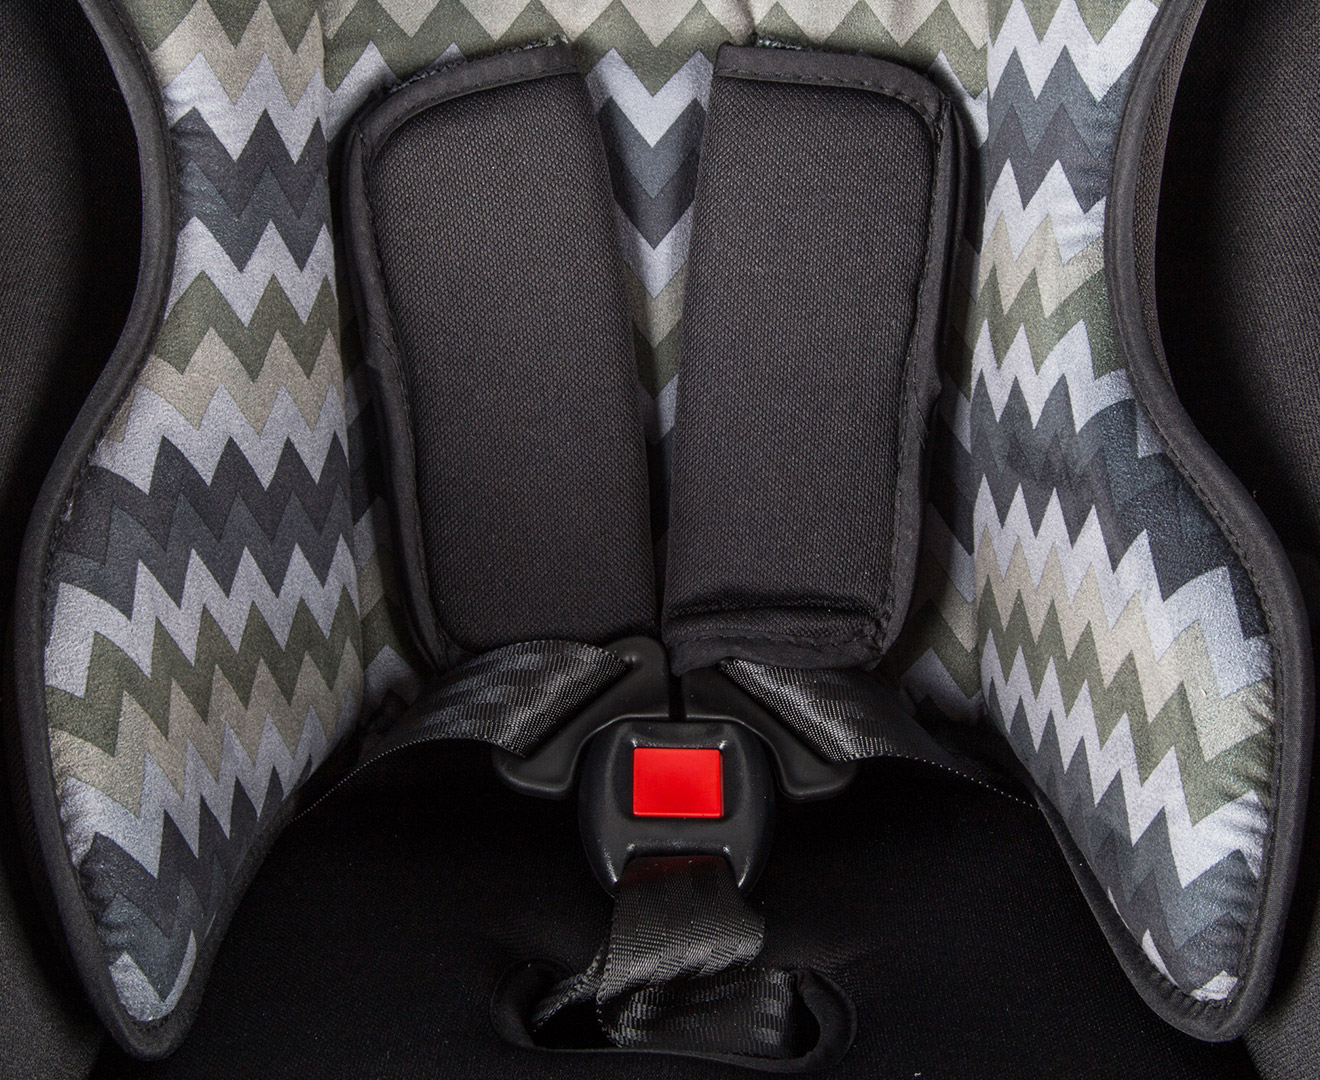 mothers choice car seat instructions